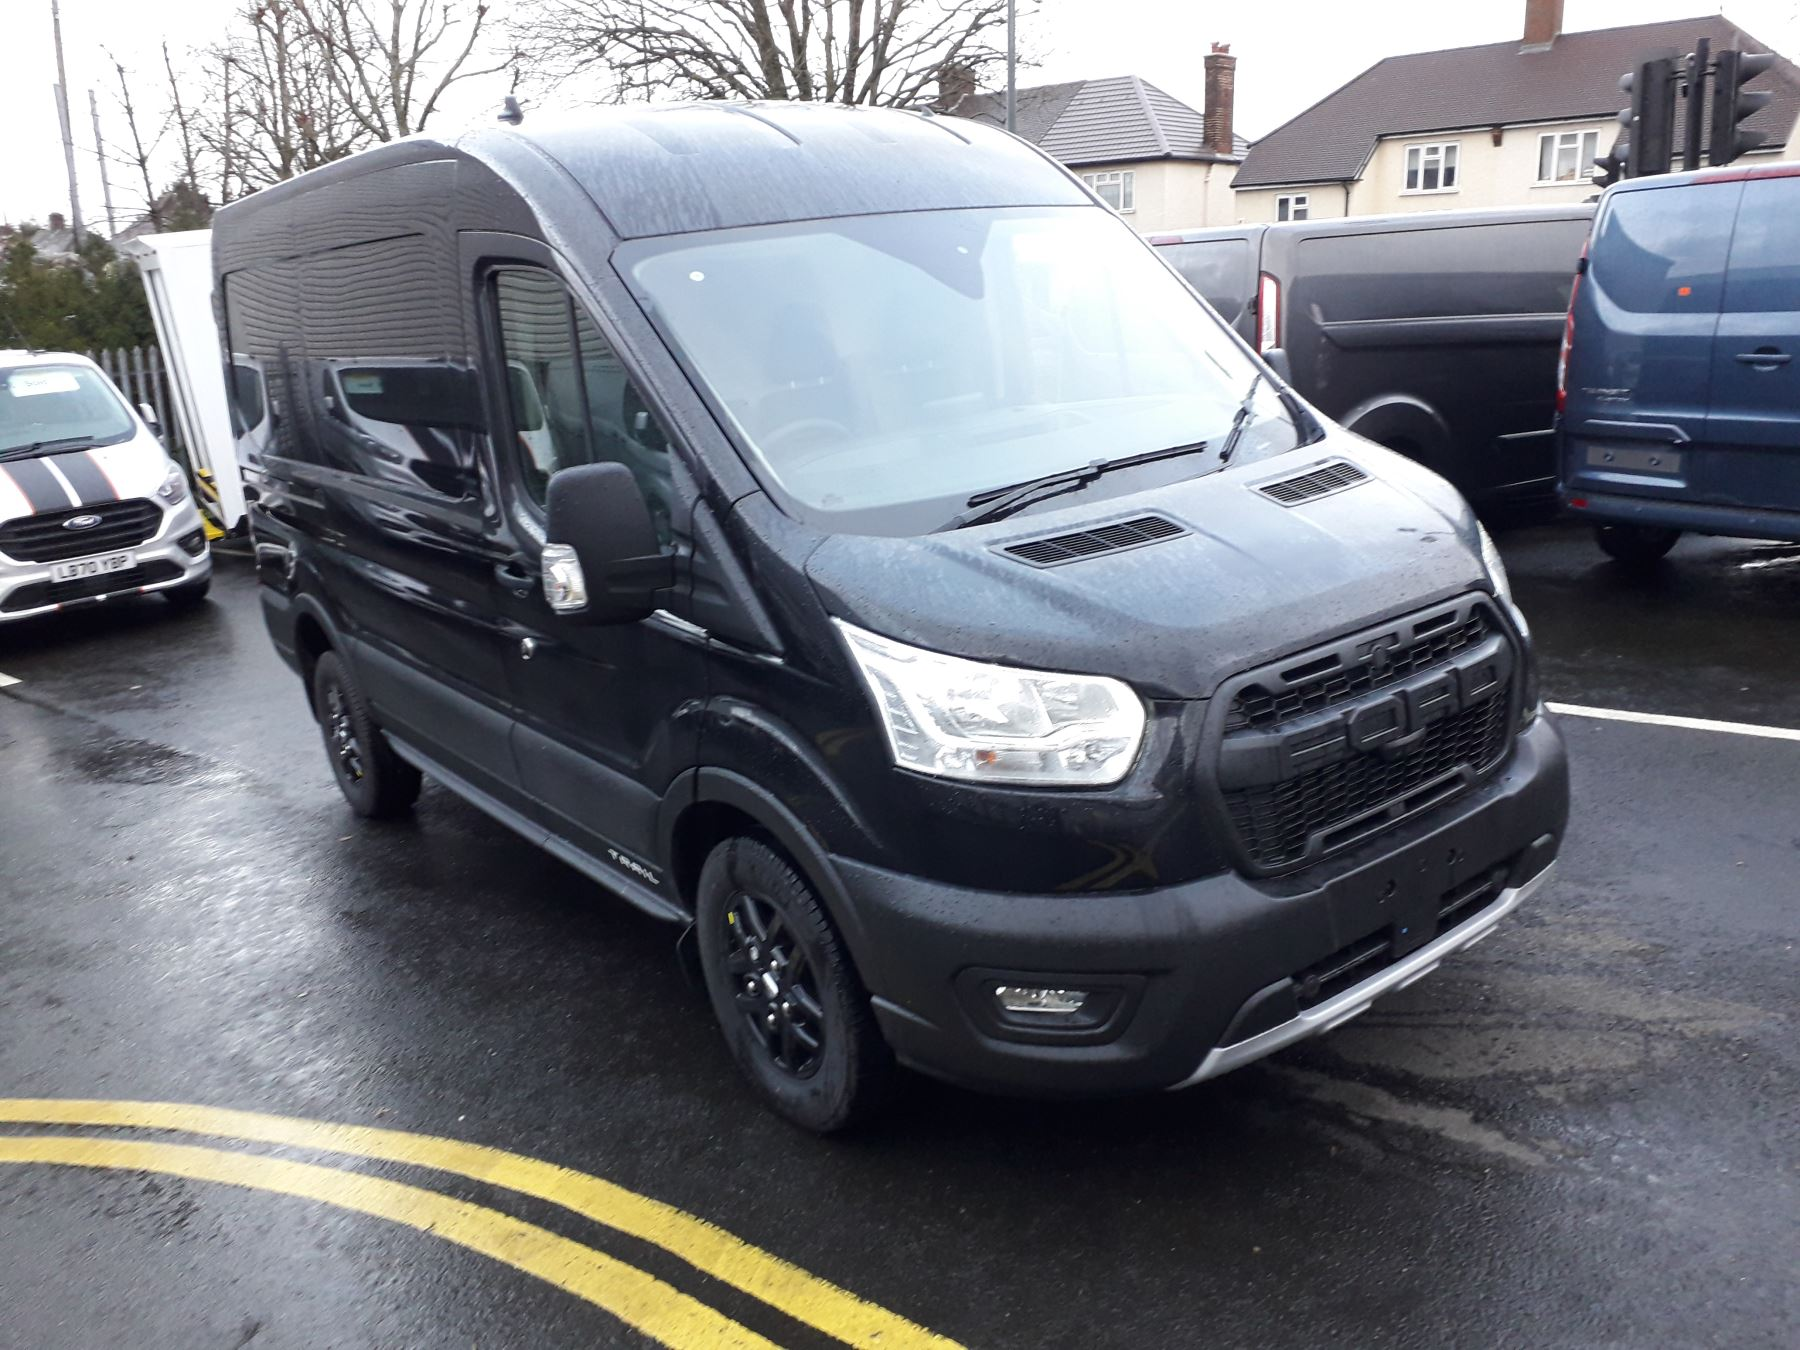 Ford Transit 350 L2H2 Trail 170PS FWD Manual PLUS VAT 2.0 Diesel 4 door (2021)